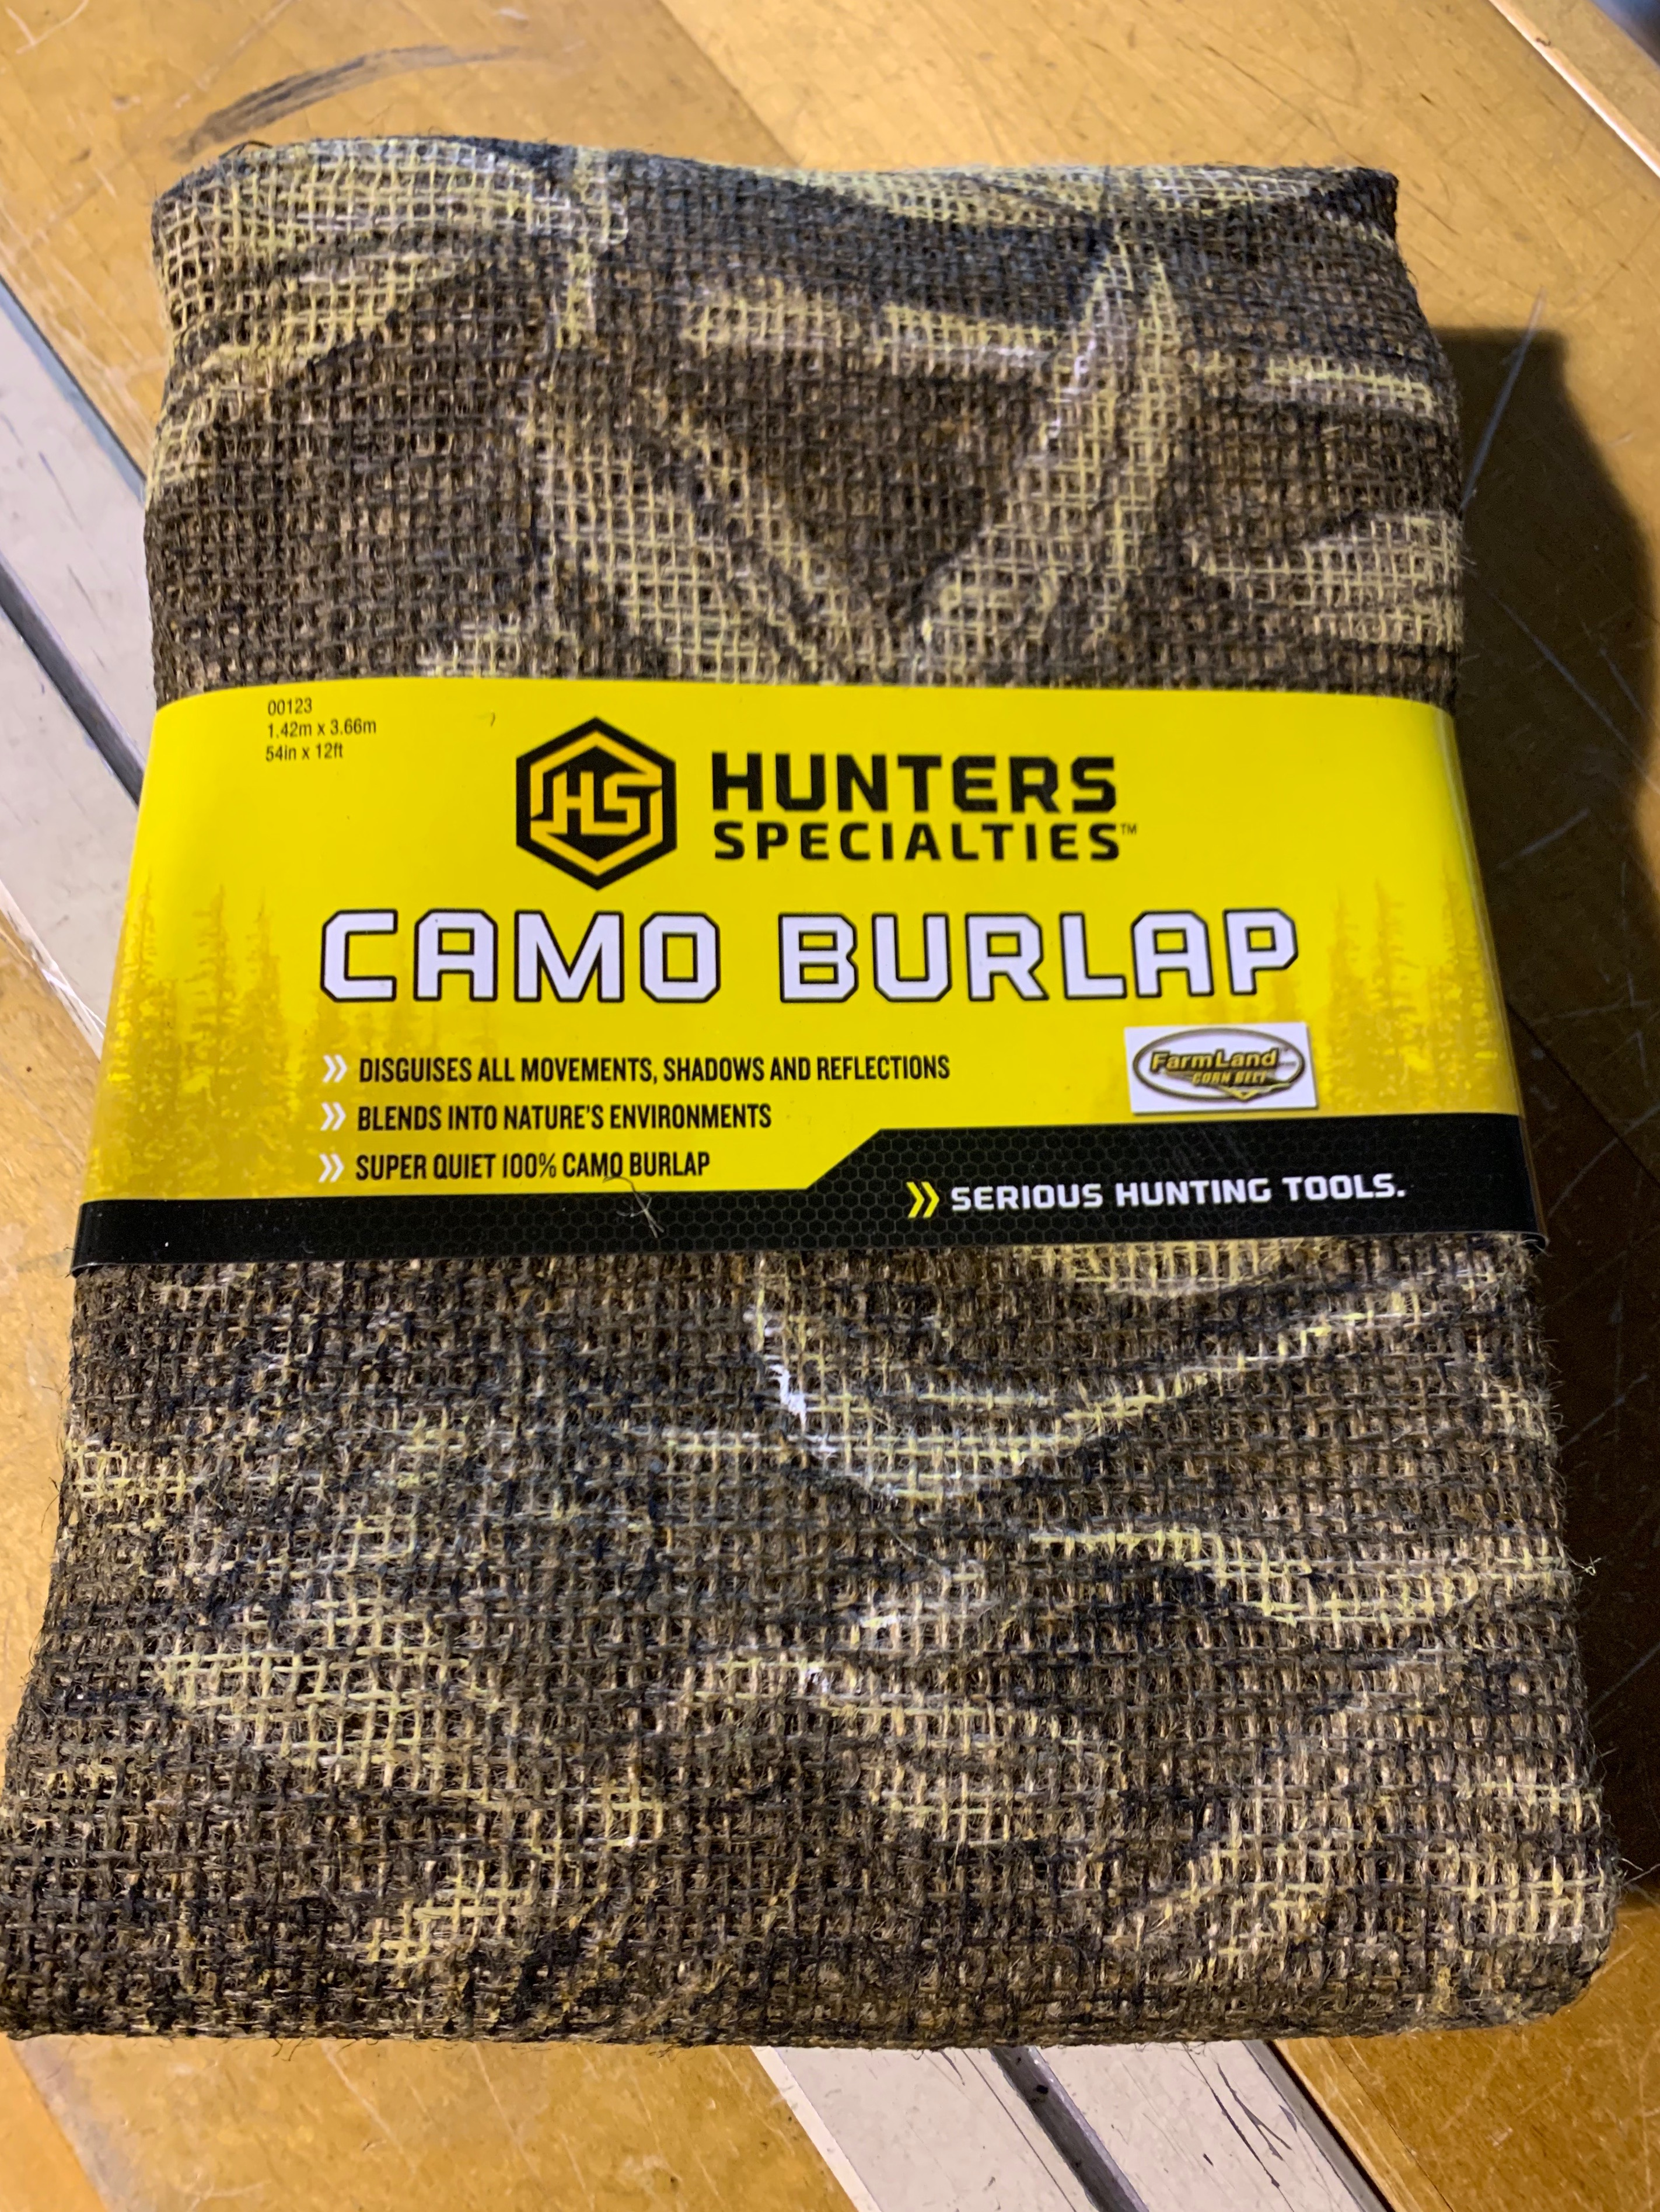 Farmlands Camo Burlap